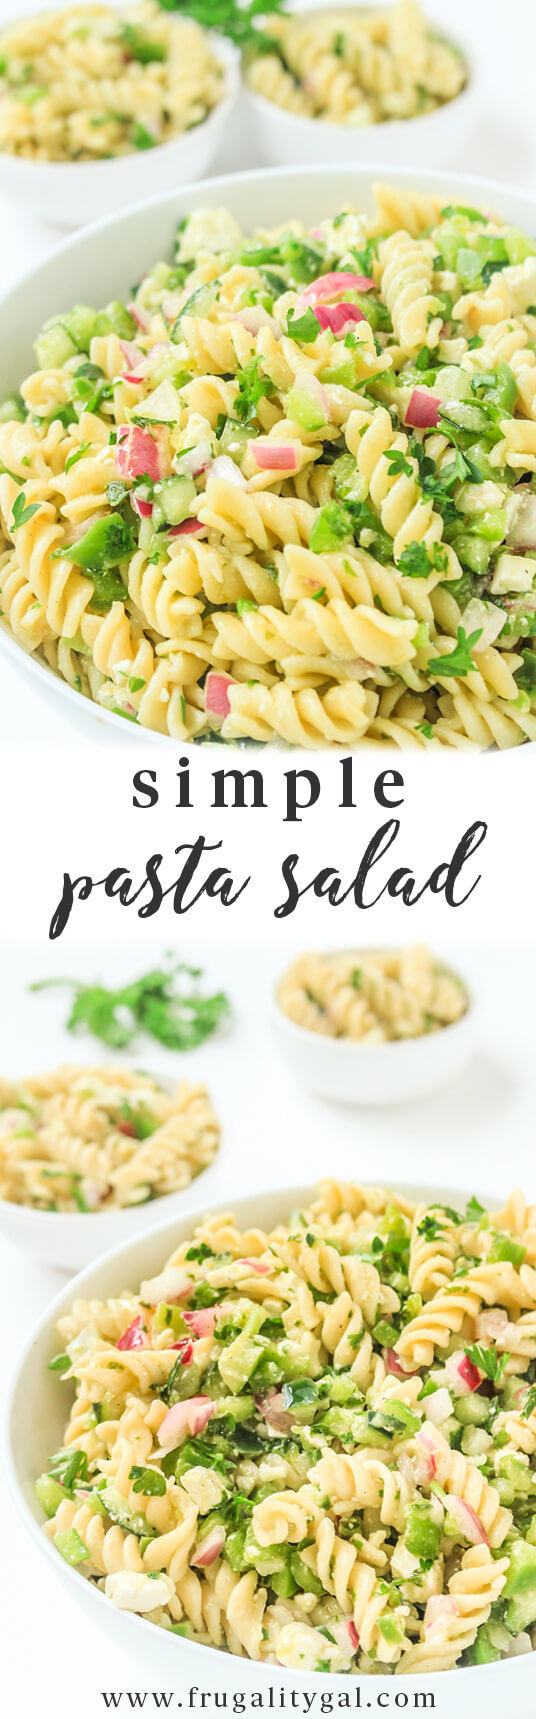 Easy Pasta Salad Recipe - Cold Pasta Salad Recipes Cold - Potluck Recipes - Pasta Recipes Easy - Vegetarian Recipes Easy - Italian Recipes Pasta Salad